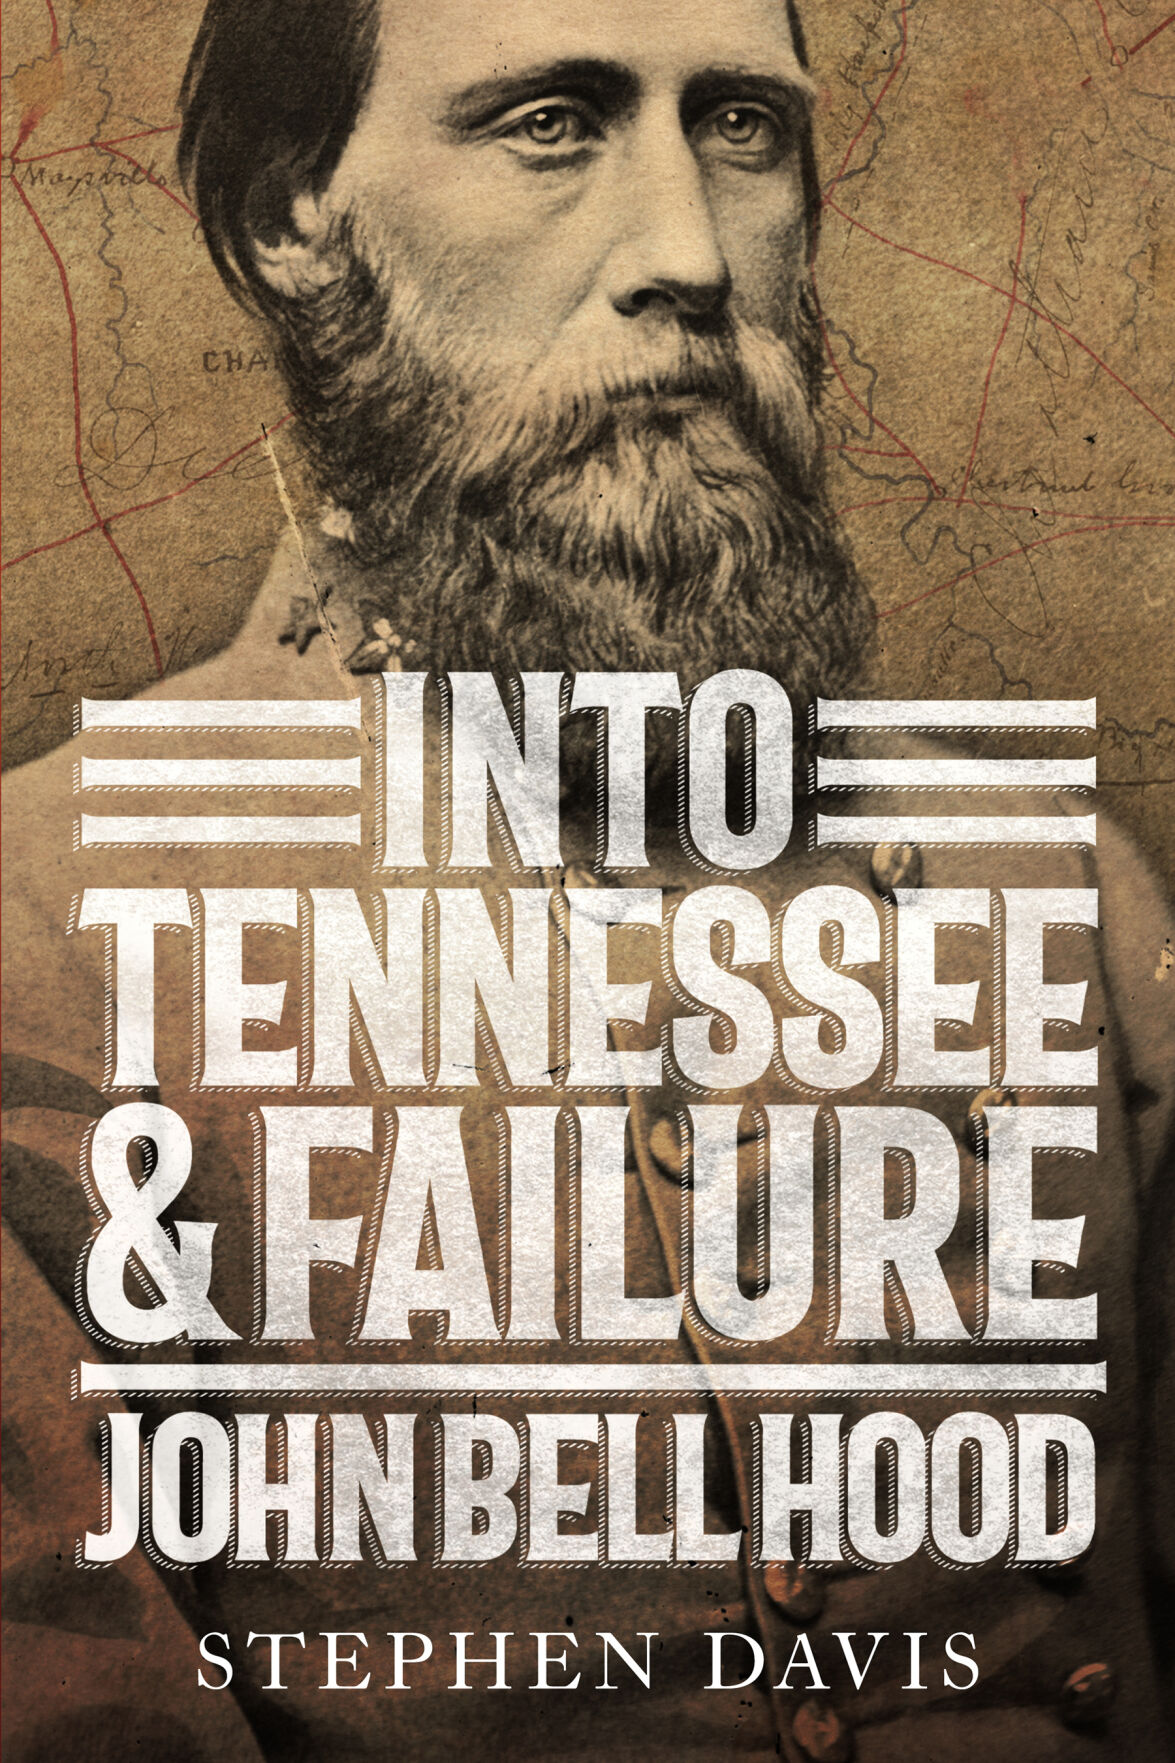 IntoTennessee_cover-01.indd